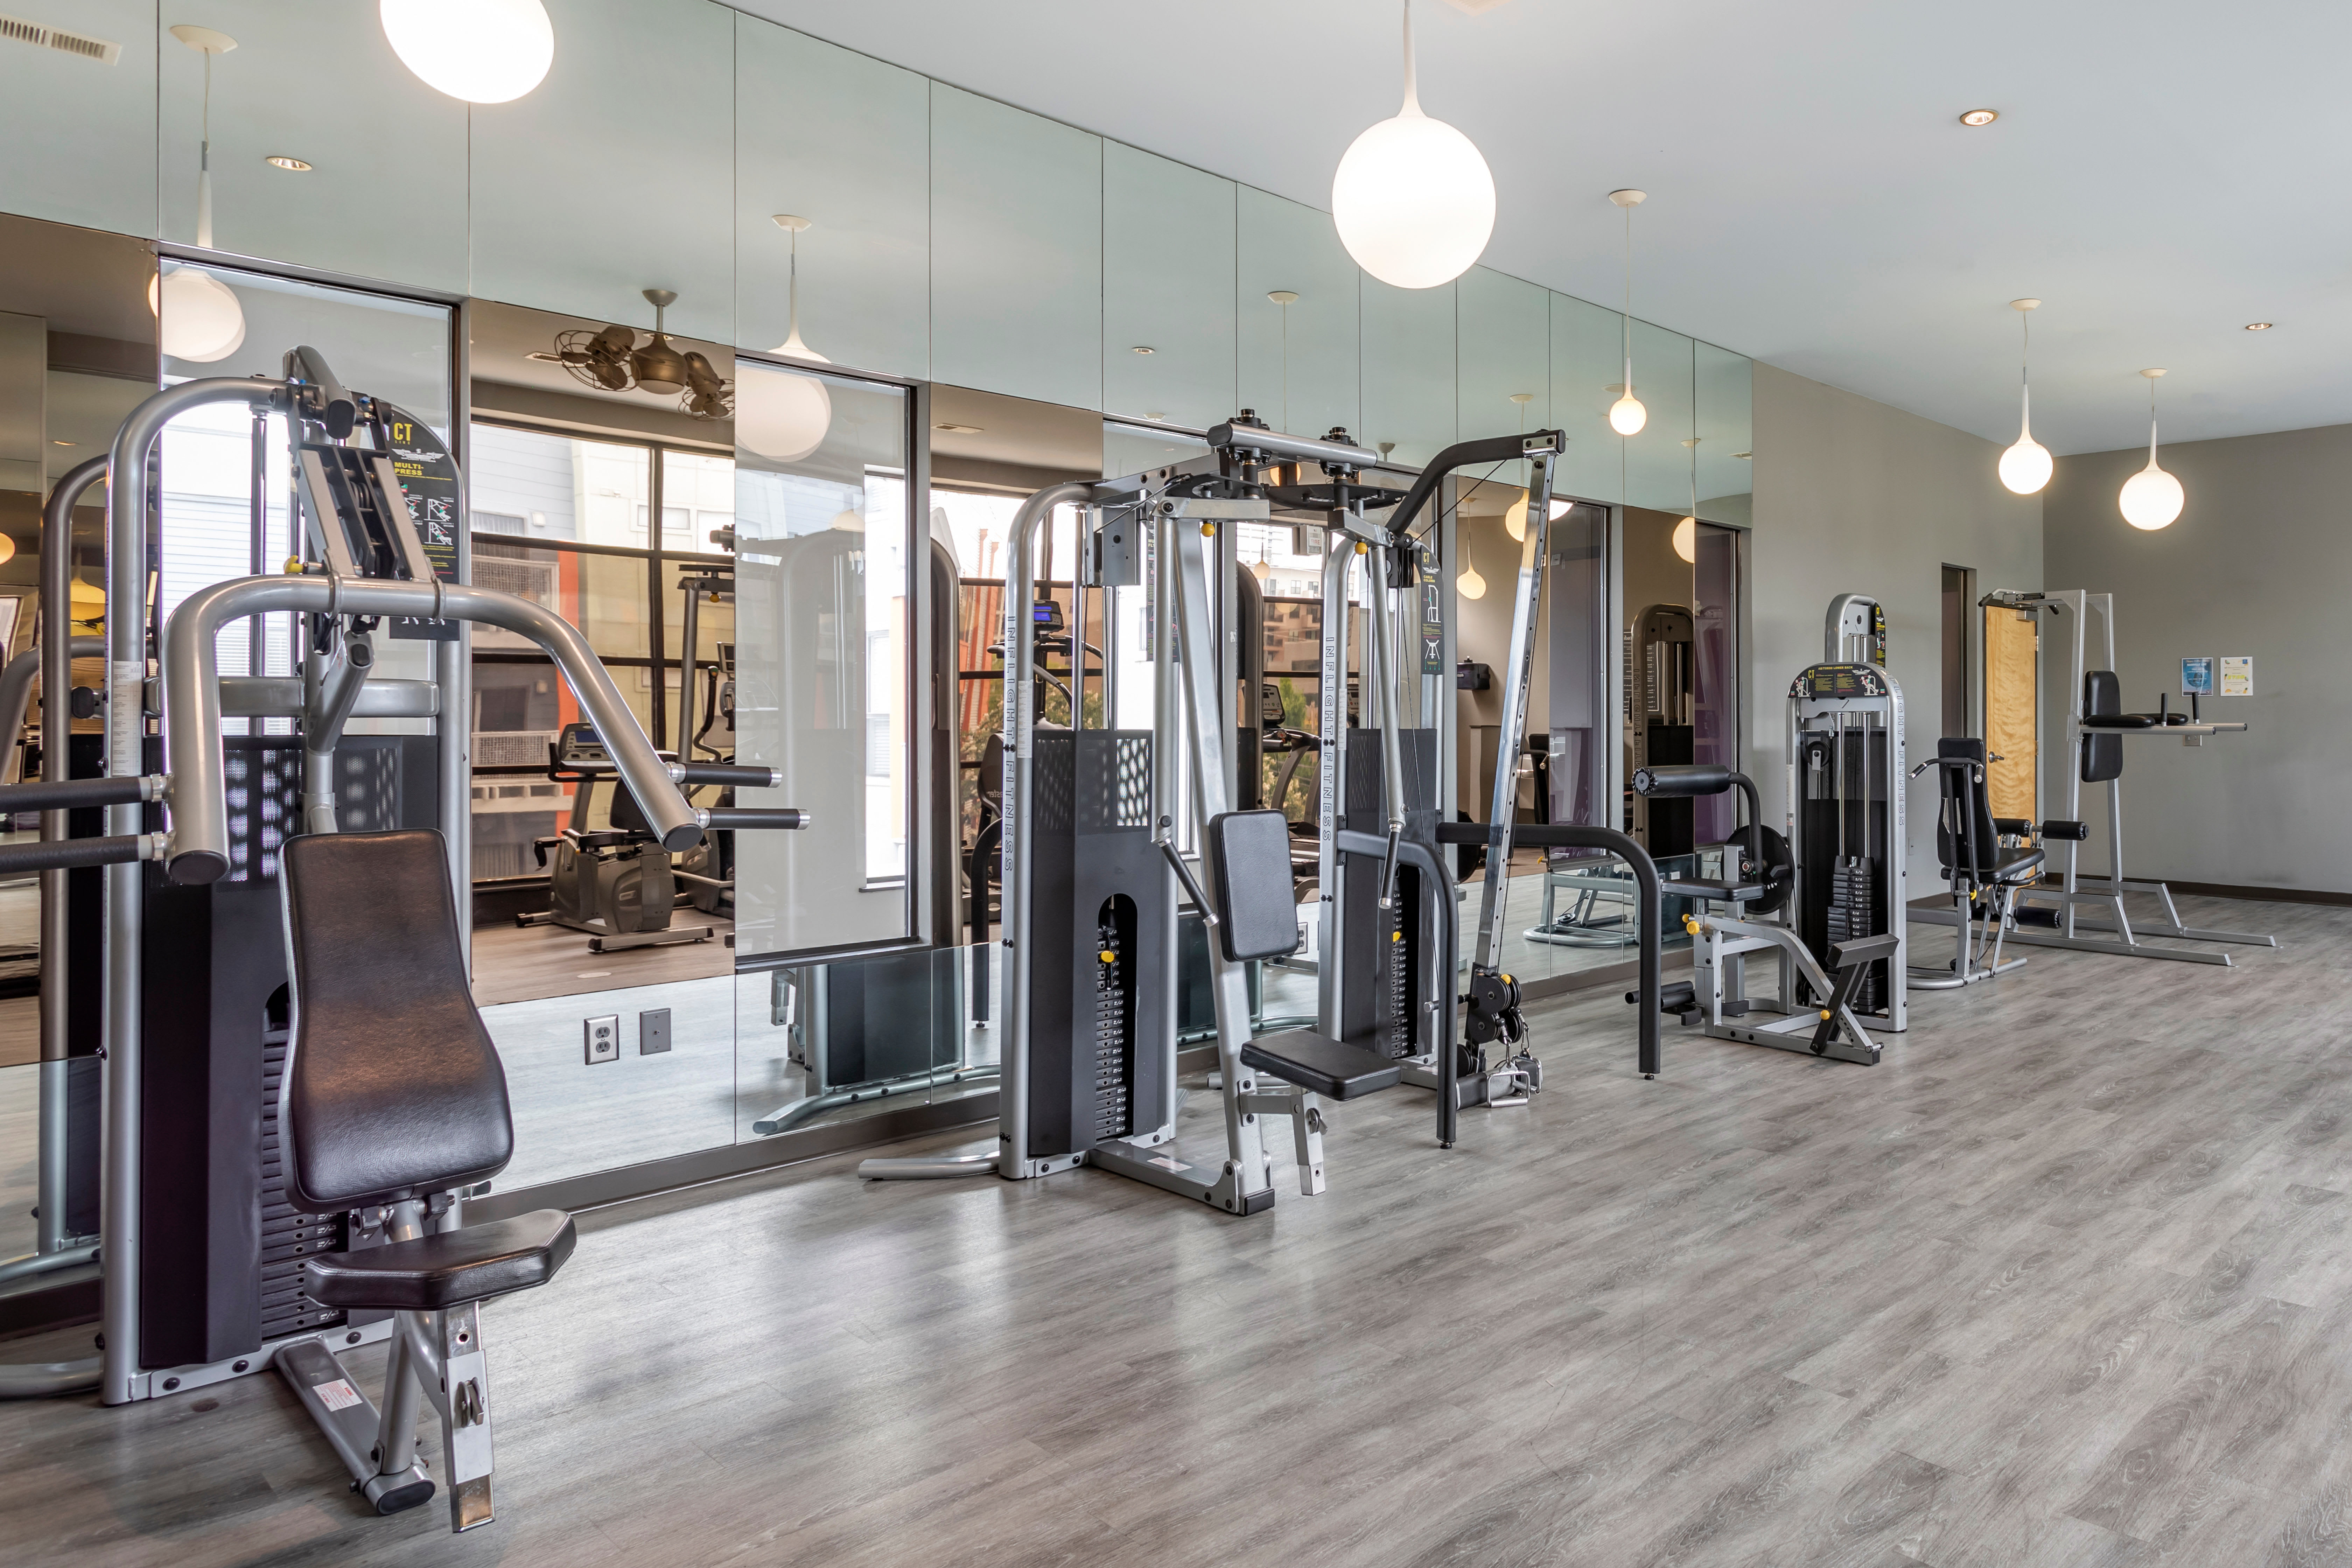 Onsite fitness center at Olympus Midtown in Nashville, Tennessee